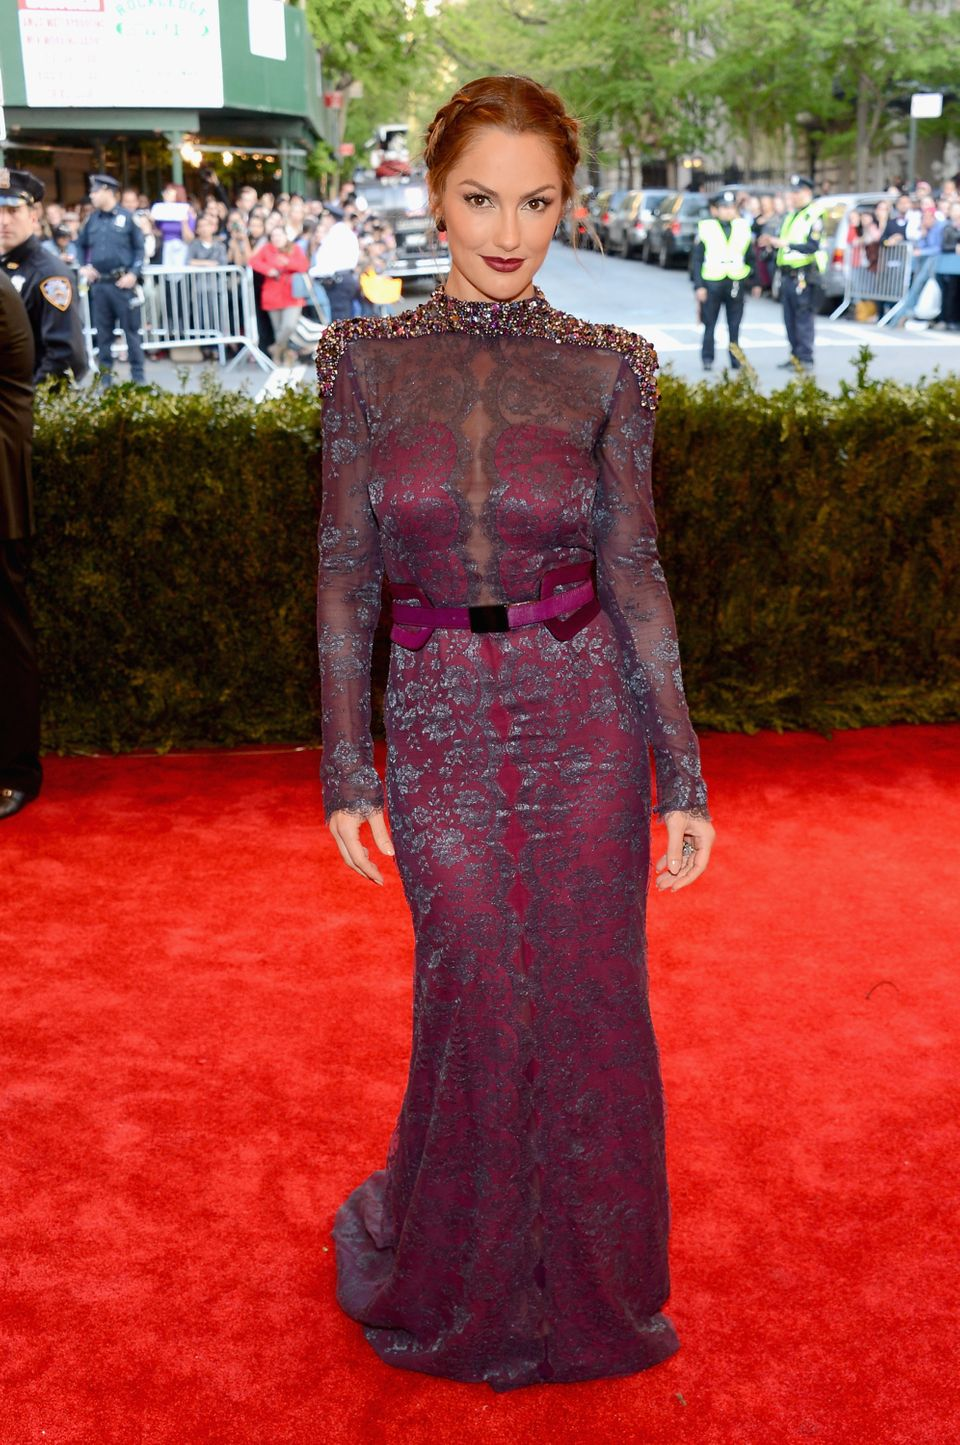 d865eb994295 Katy Perry Flashes Her Bra In A Completely Sheer Dress (PHOTOS ...